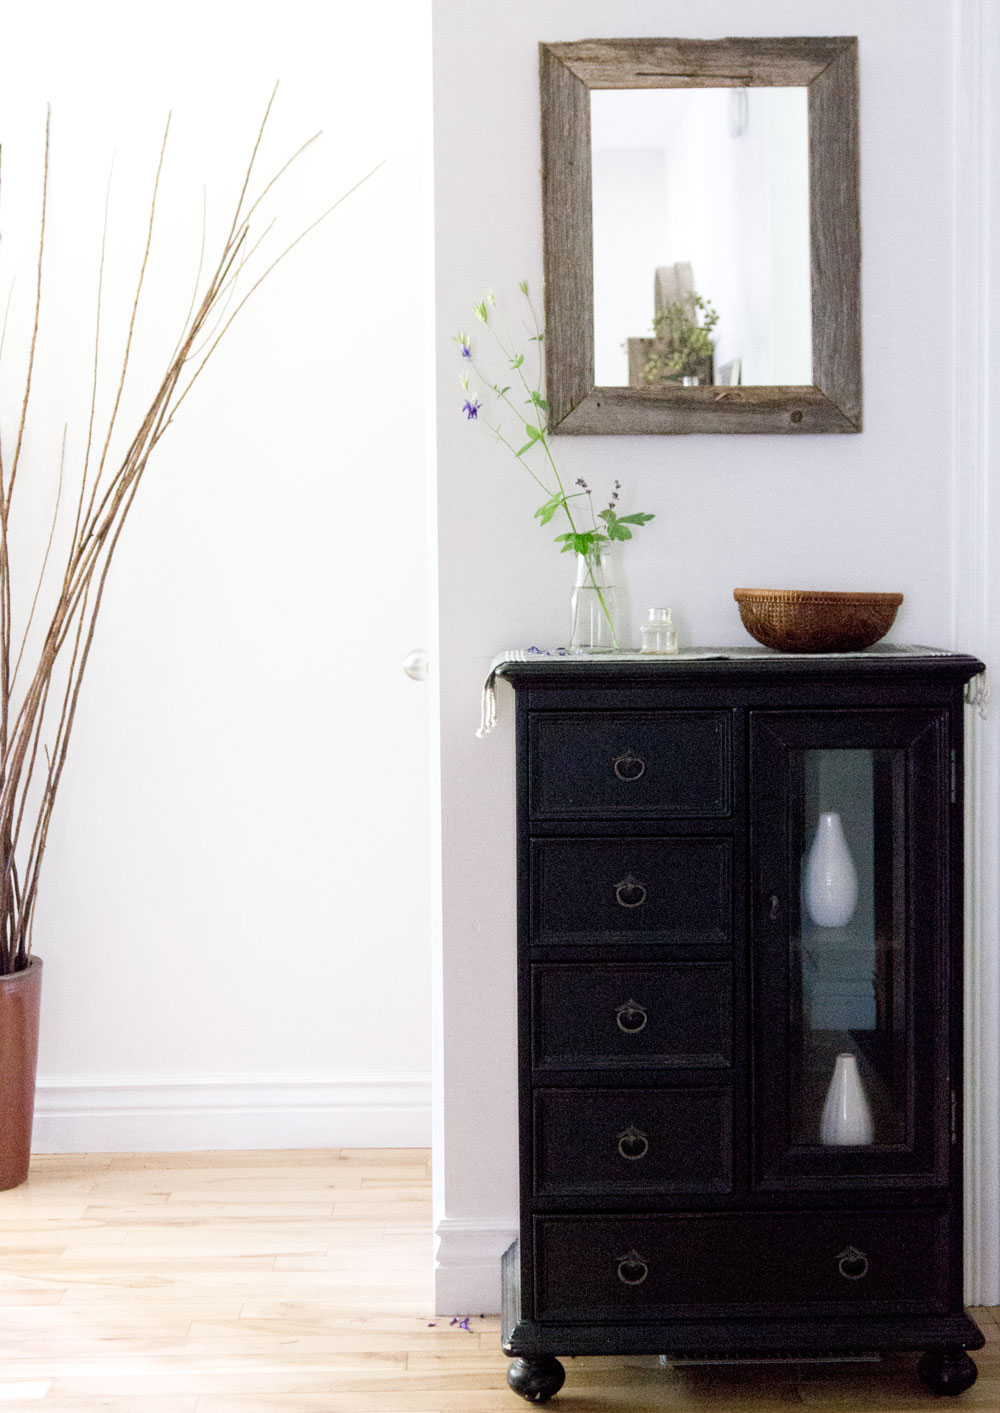 5 essentials for a functional entryway and simpler life